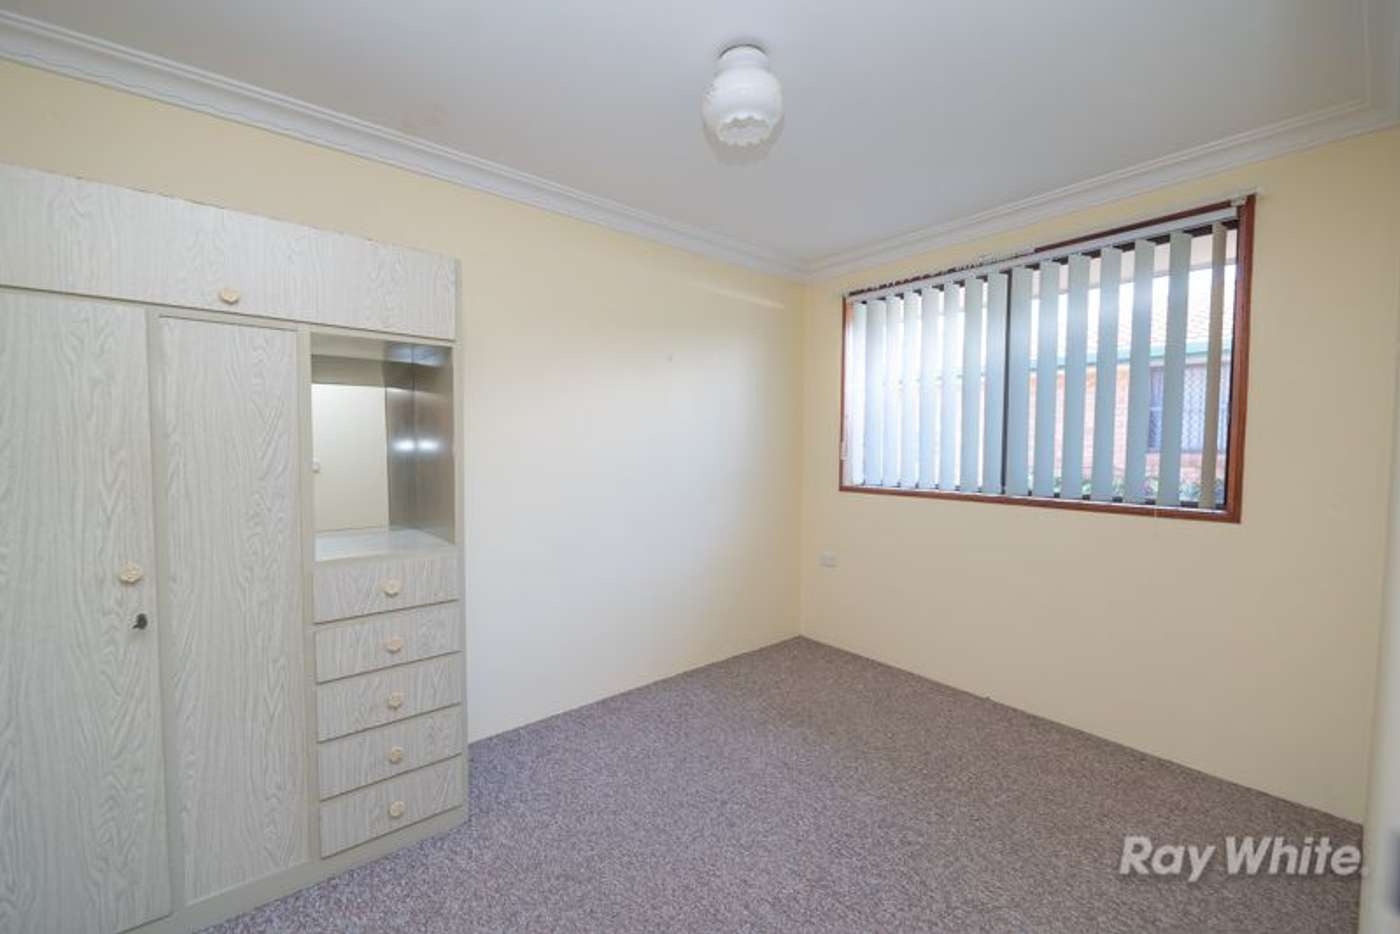 Sixth view of Homely unit listing, 6/164 Fitzroy, Grafton NSW 2460